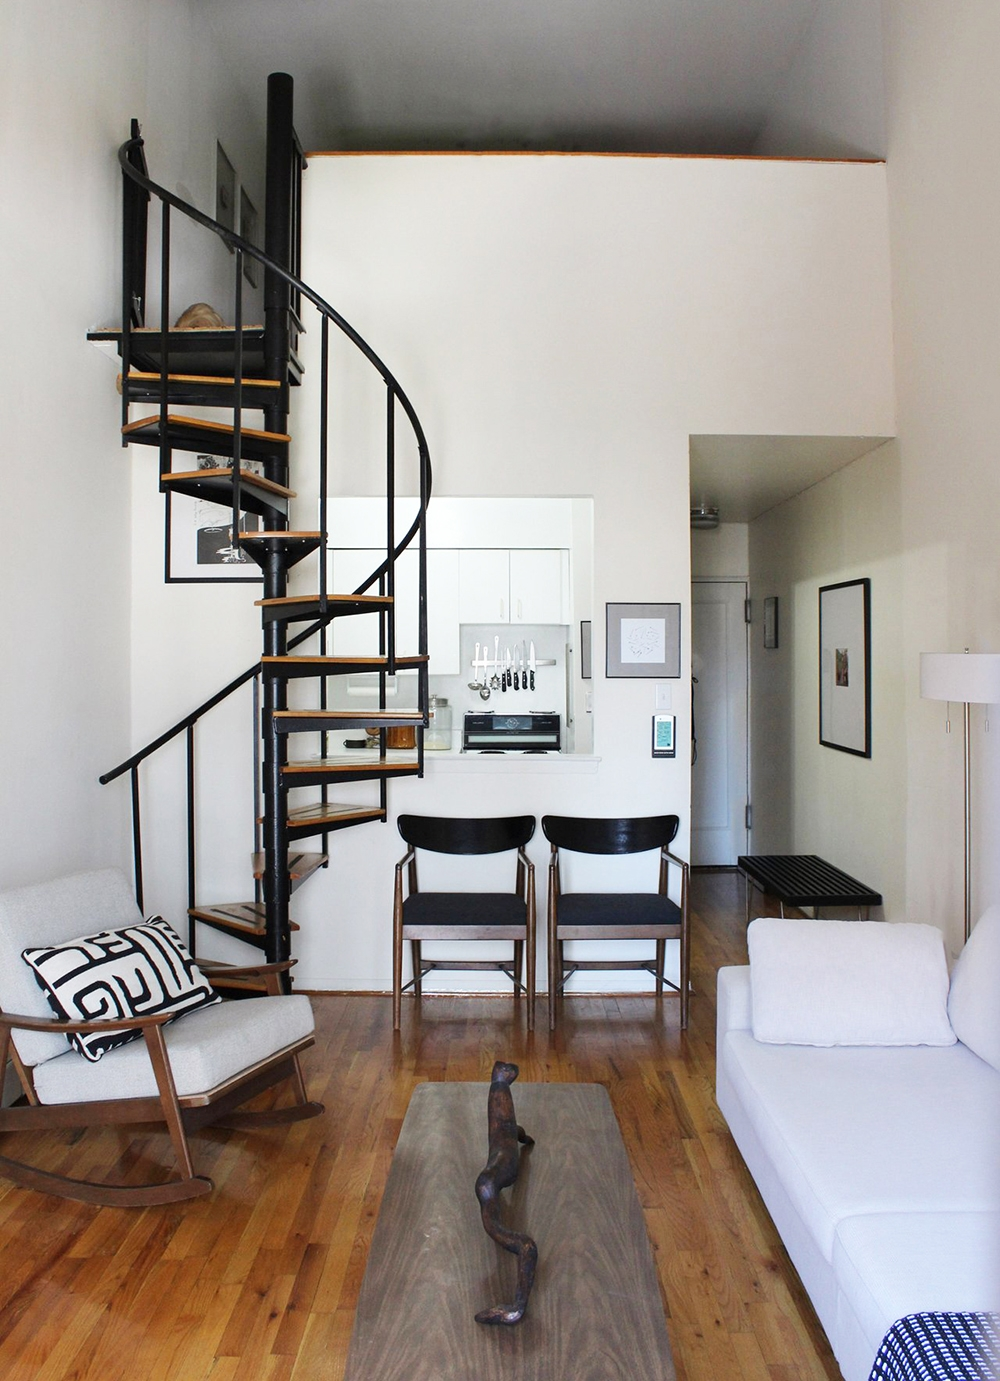 Space Saving Staircases Room For Tuesday Blog | Staircase For Small House | Internal | Popular | Tiny House | Concrete | Diy